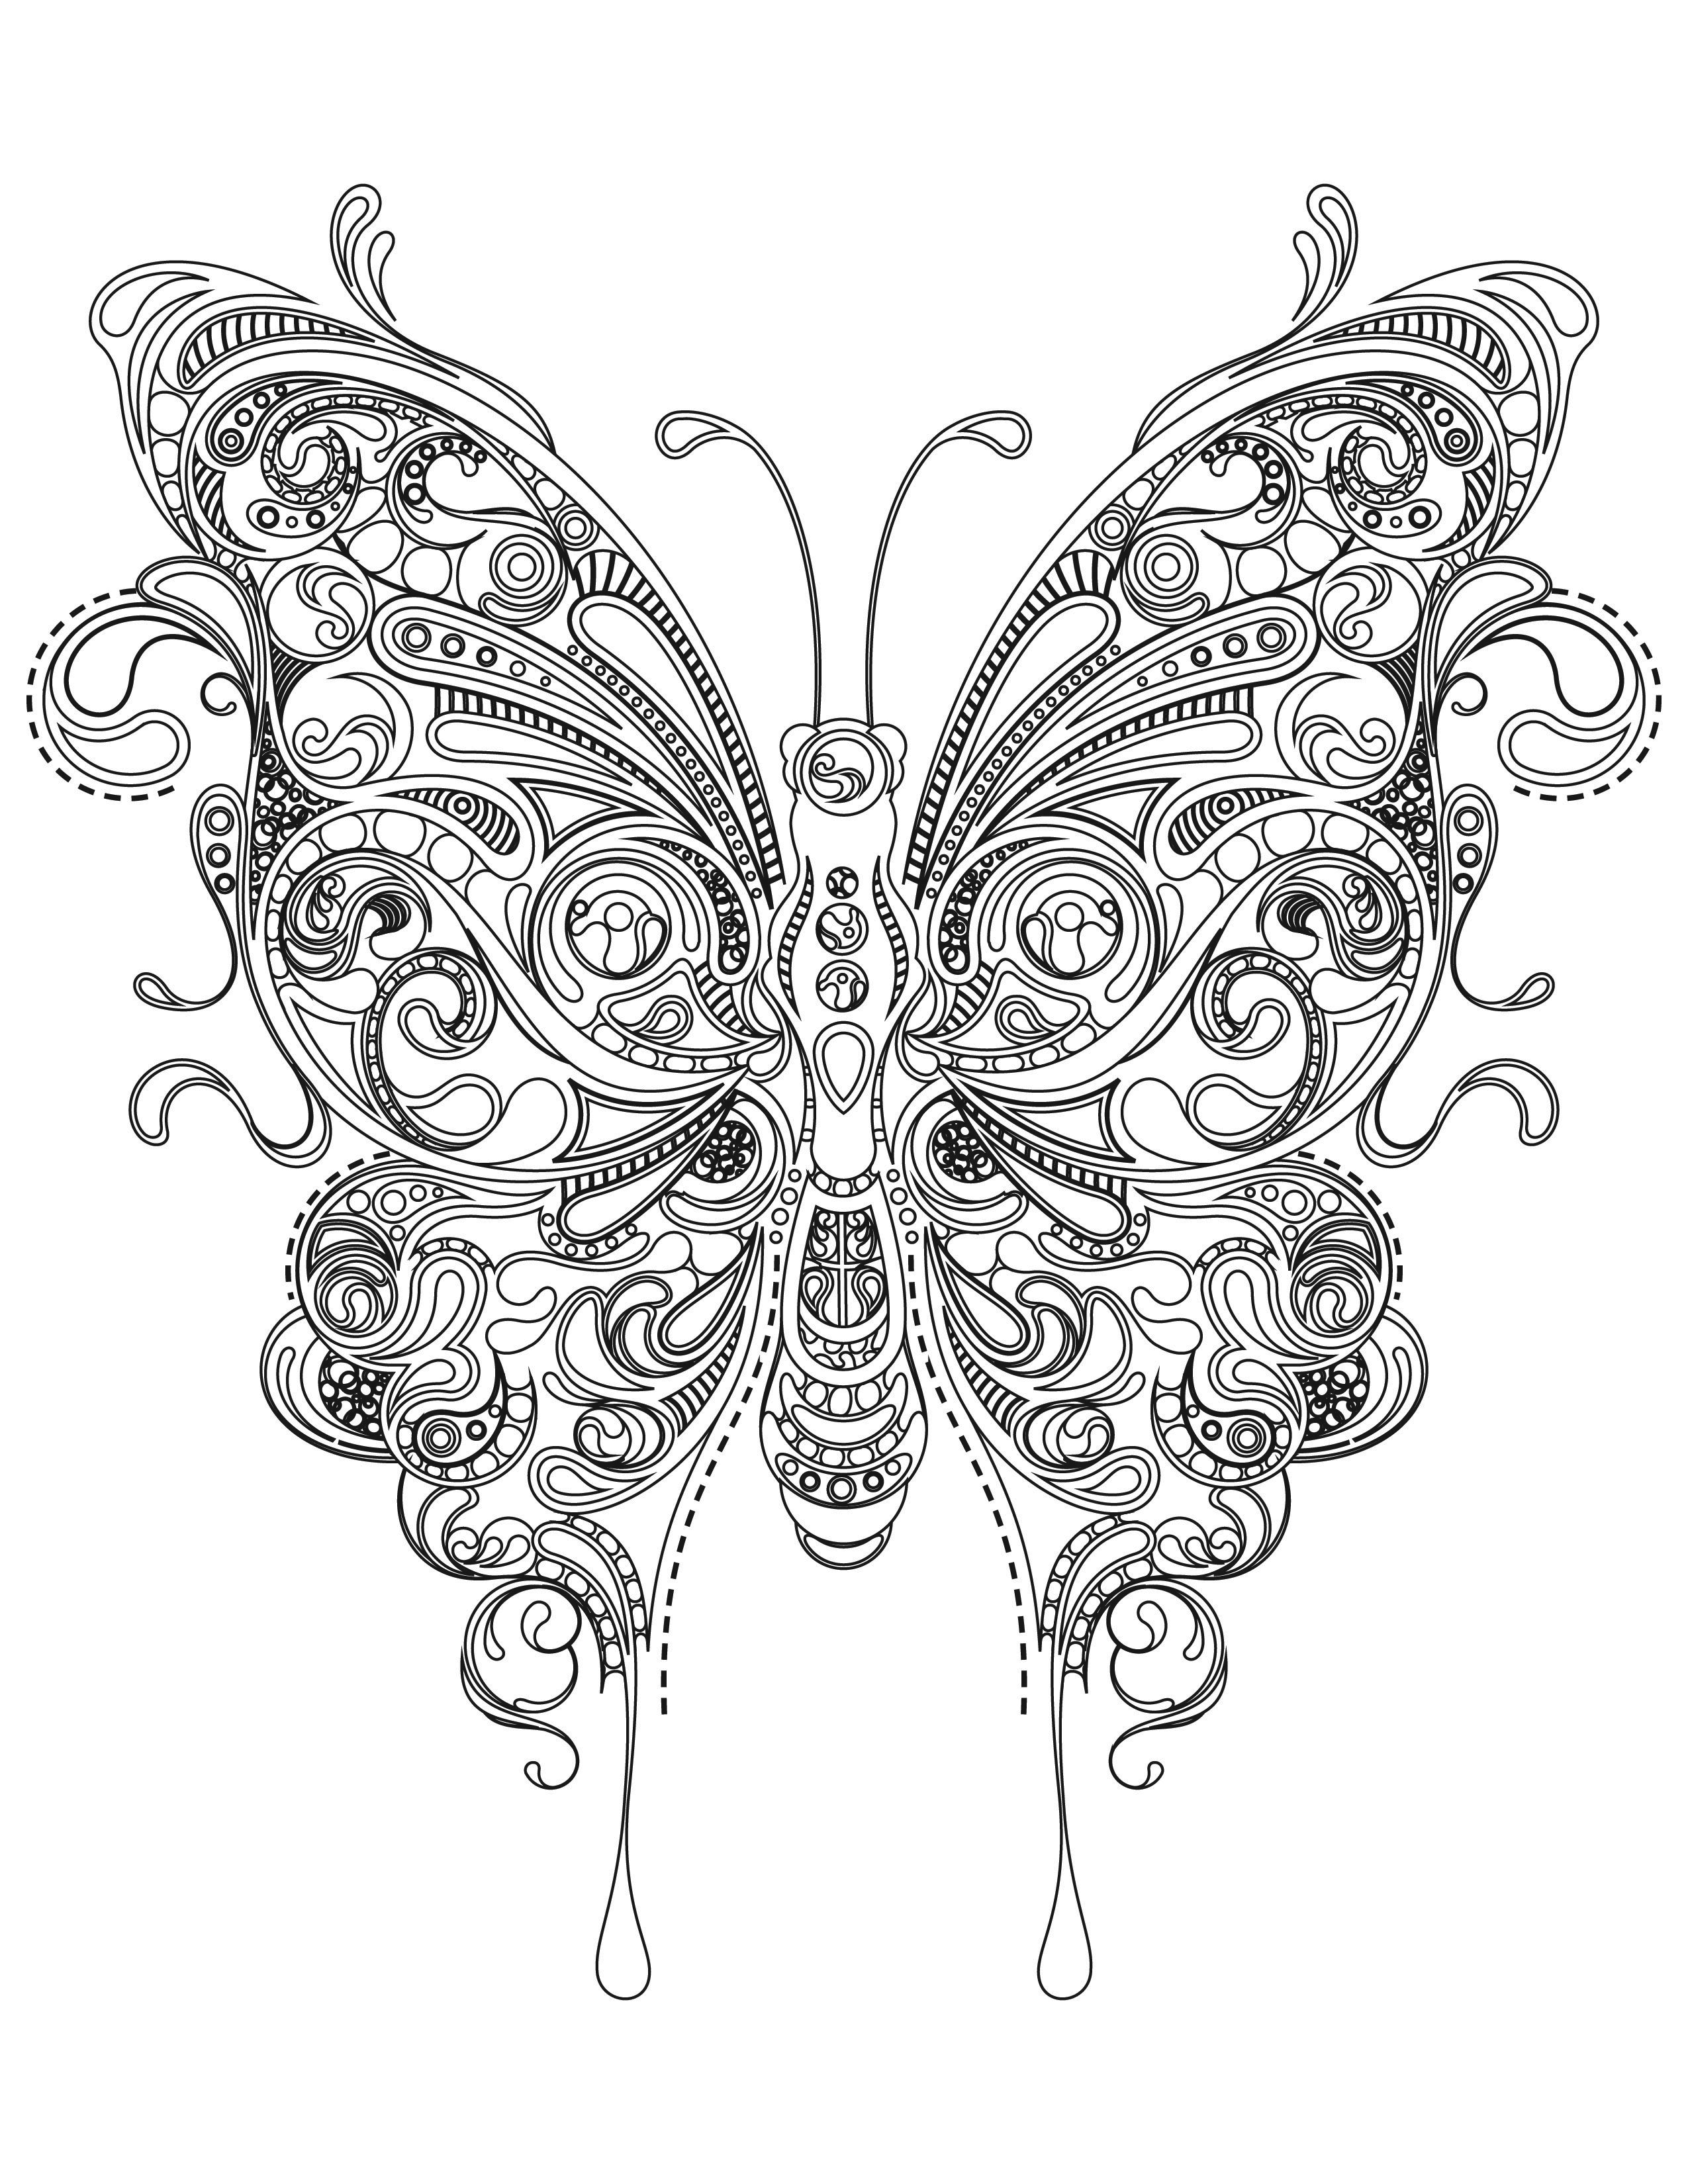 coloring pages with butterflies butterfly coloring pages for adults best coloring pages with butterflies coloring pages